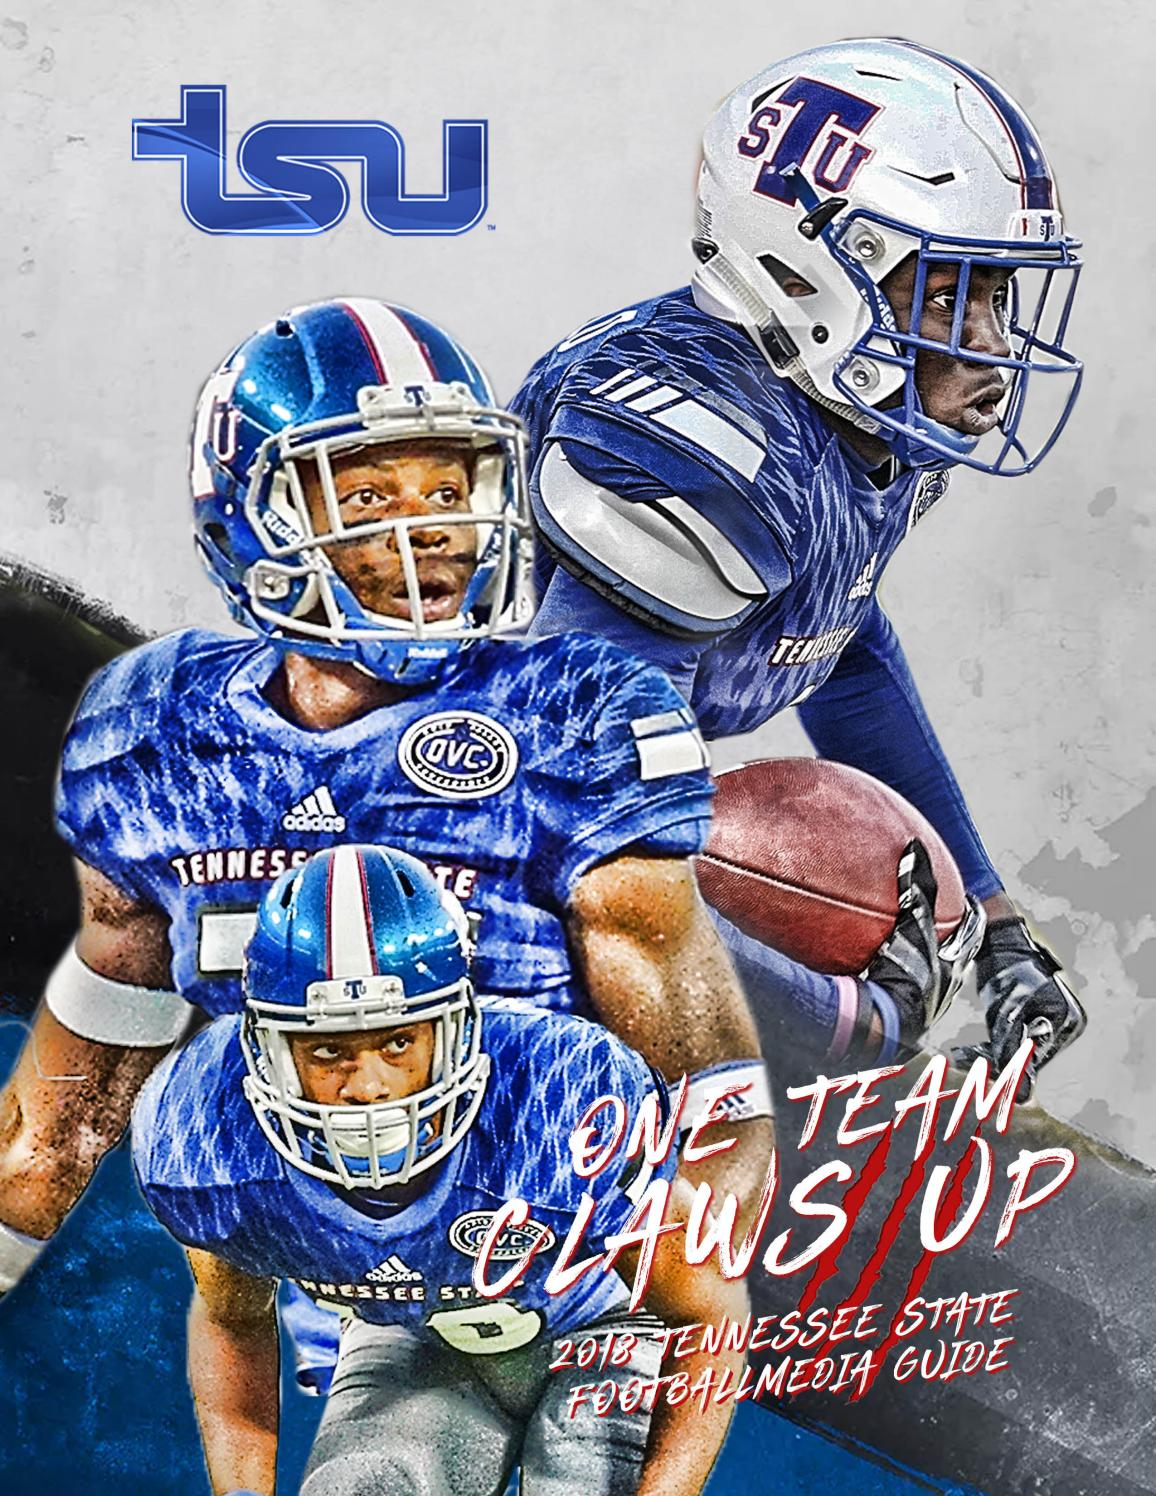 a098bddaae1 2018 Tennessee State University Football Media Guide by TSUTIGERS - issuu